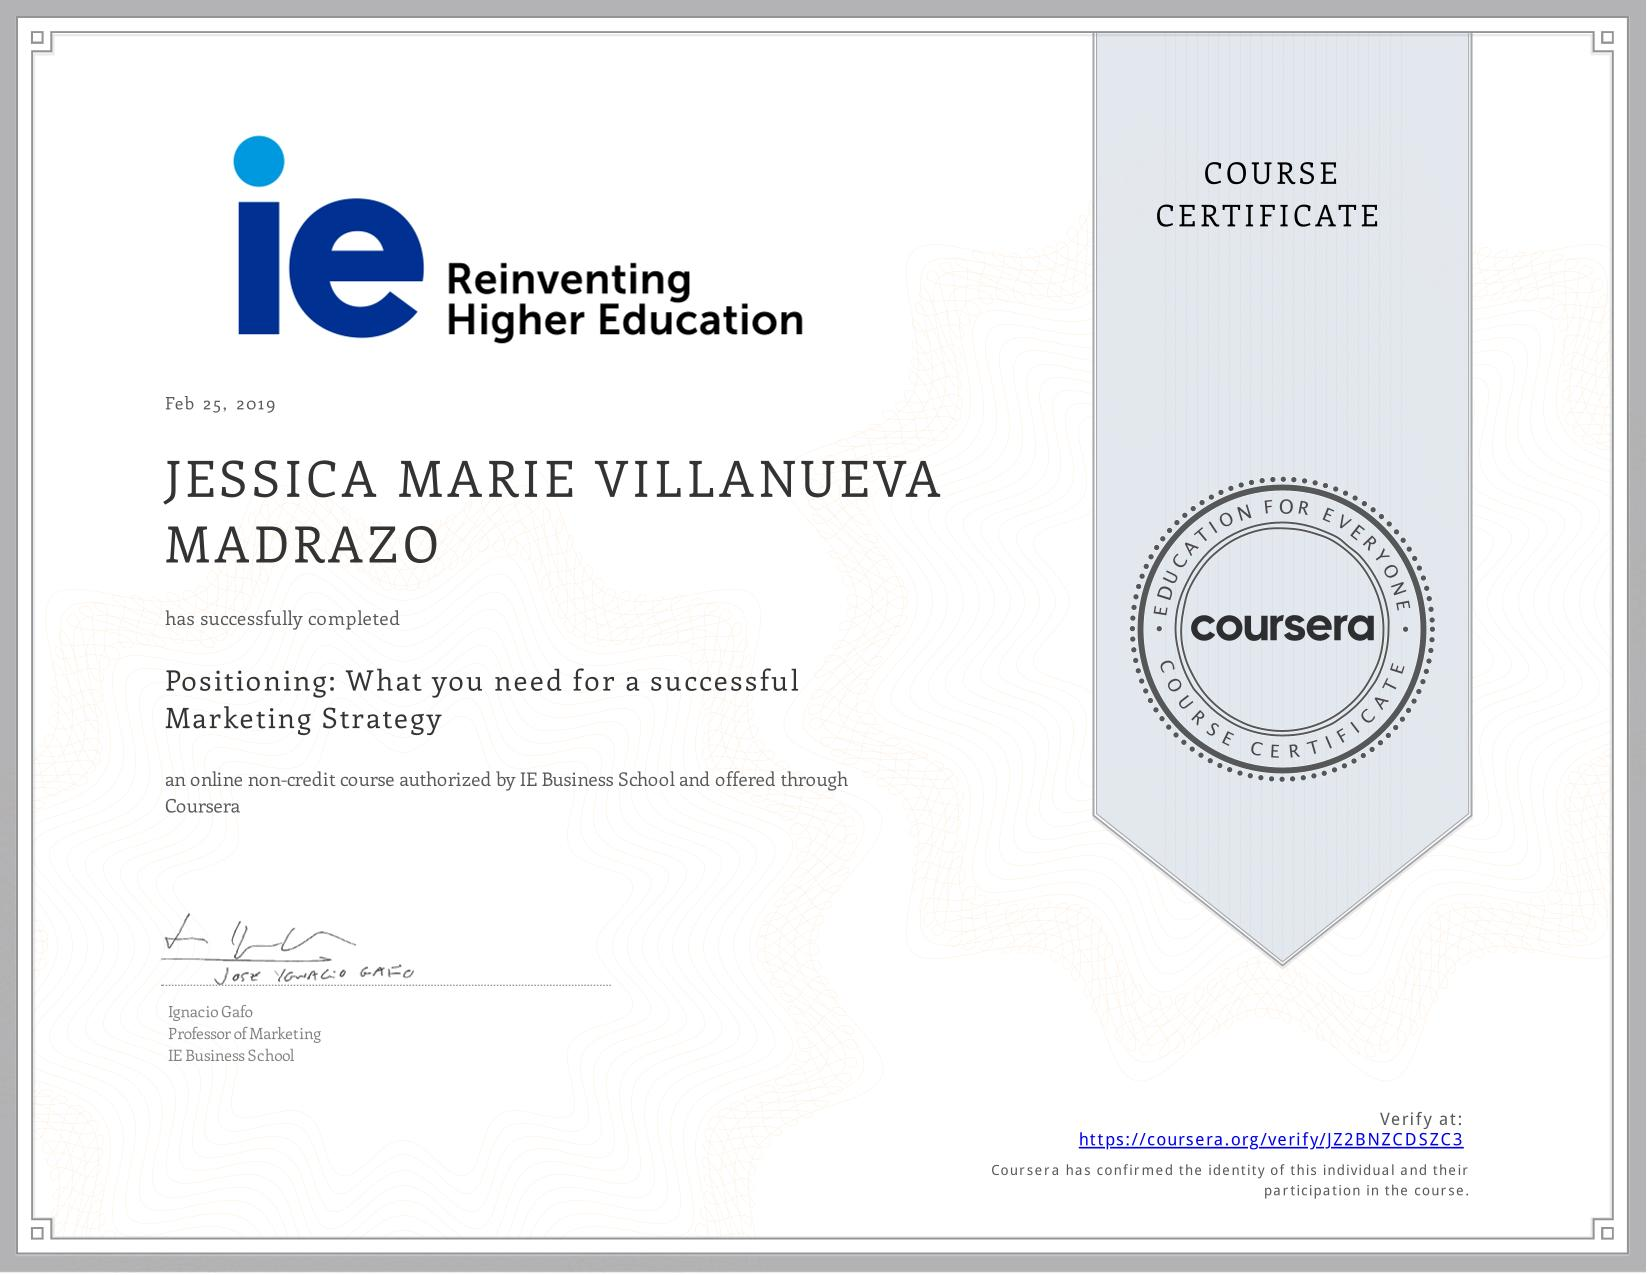 View certificate for JESSICA MARIE VILLANUEVA  MADRAZO, Positioning: What you need for a successful Marketing Strategy, an online non-credit course authorized by IE Business School and offered through Coursera